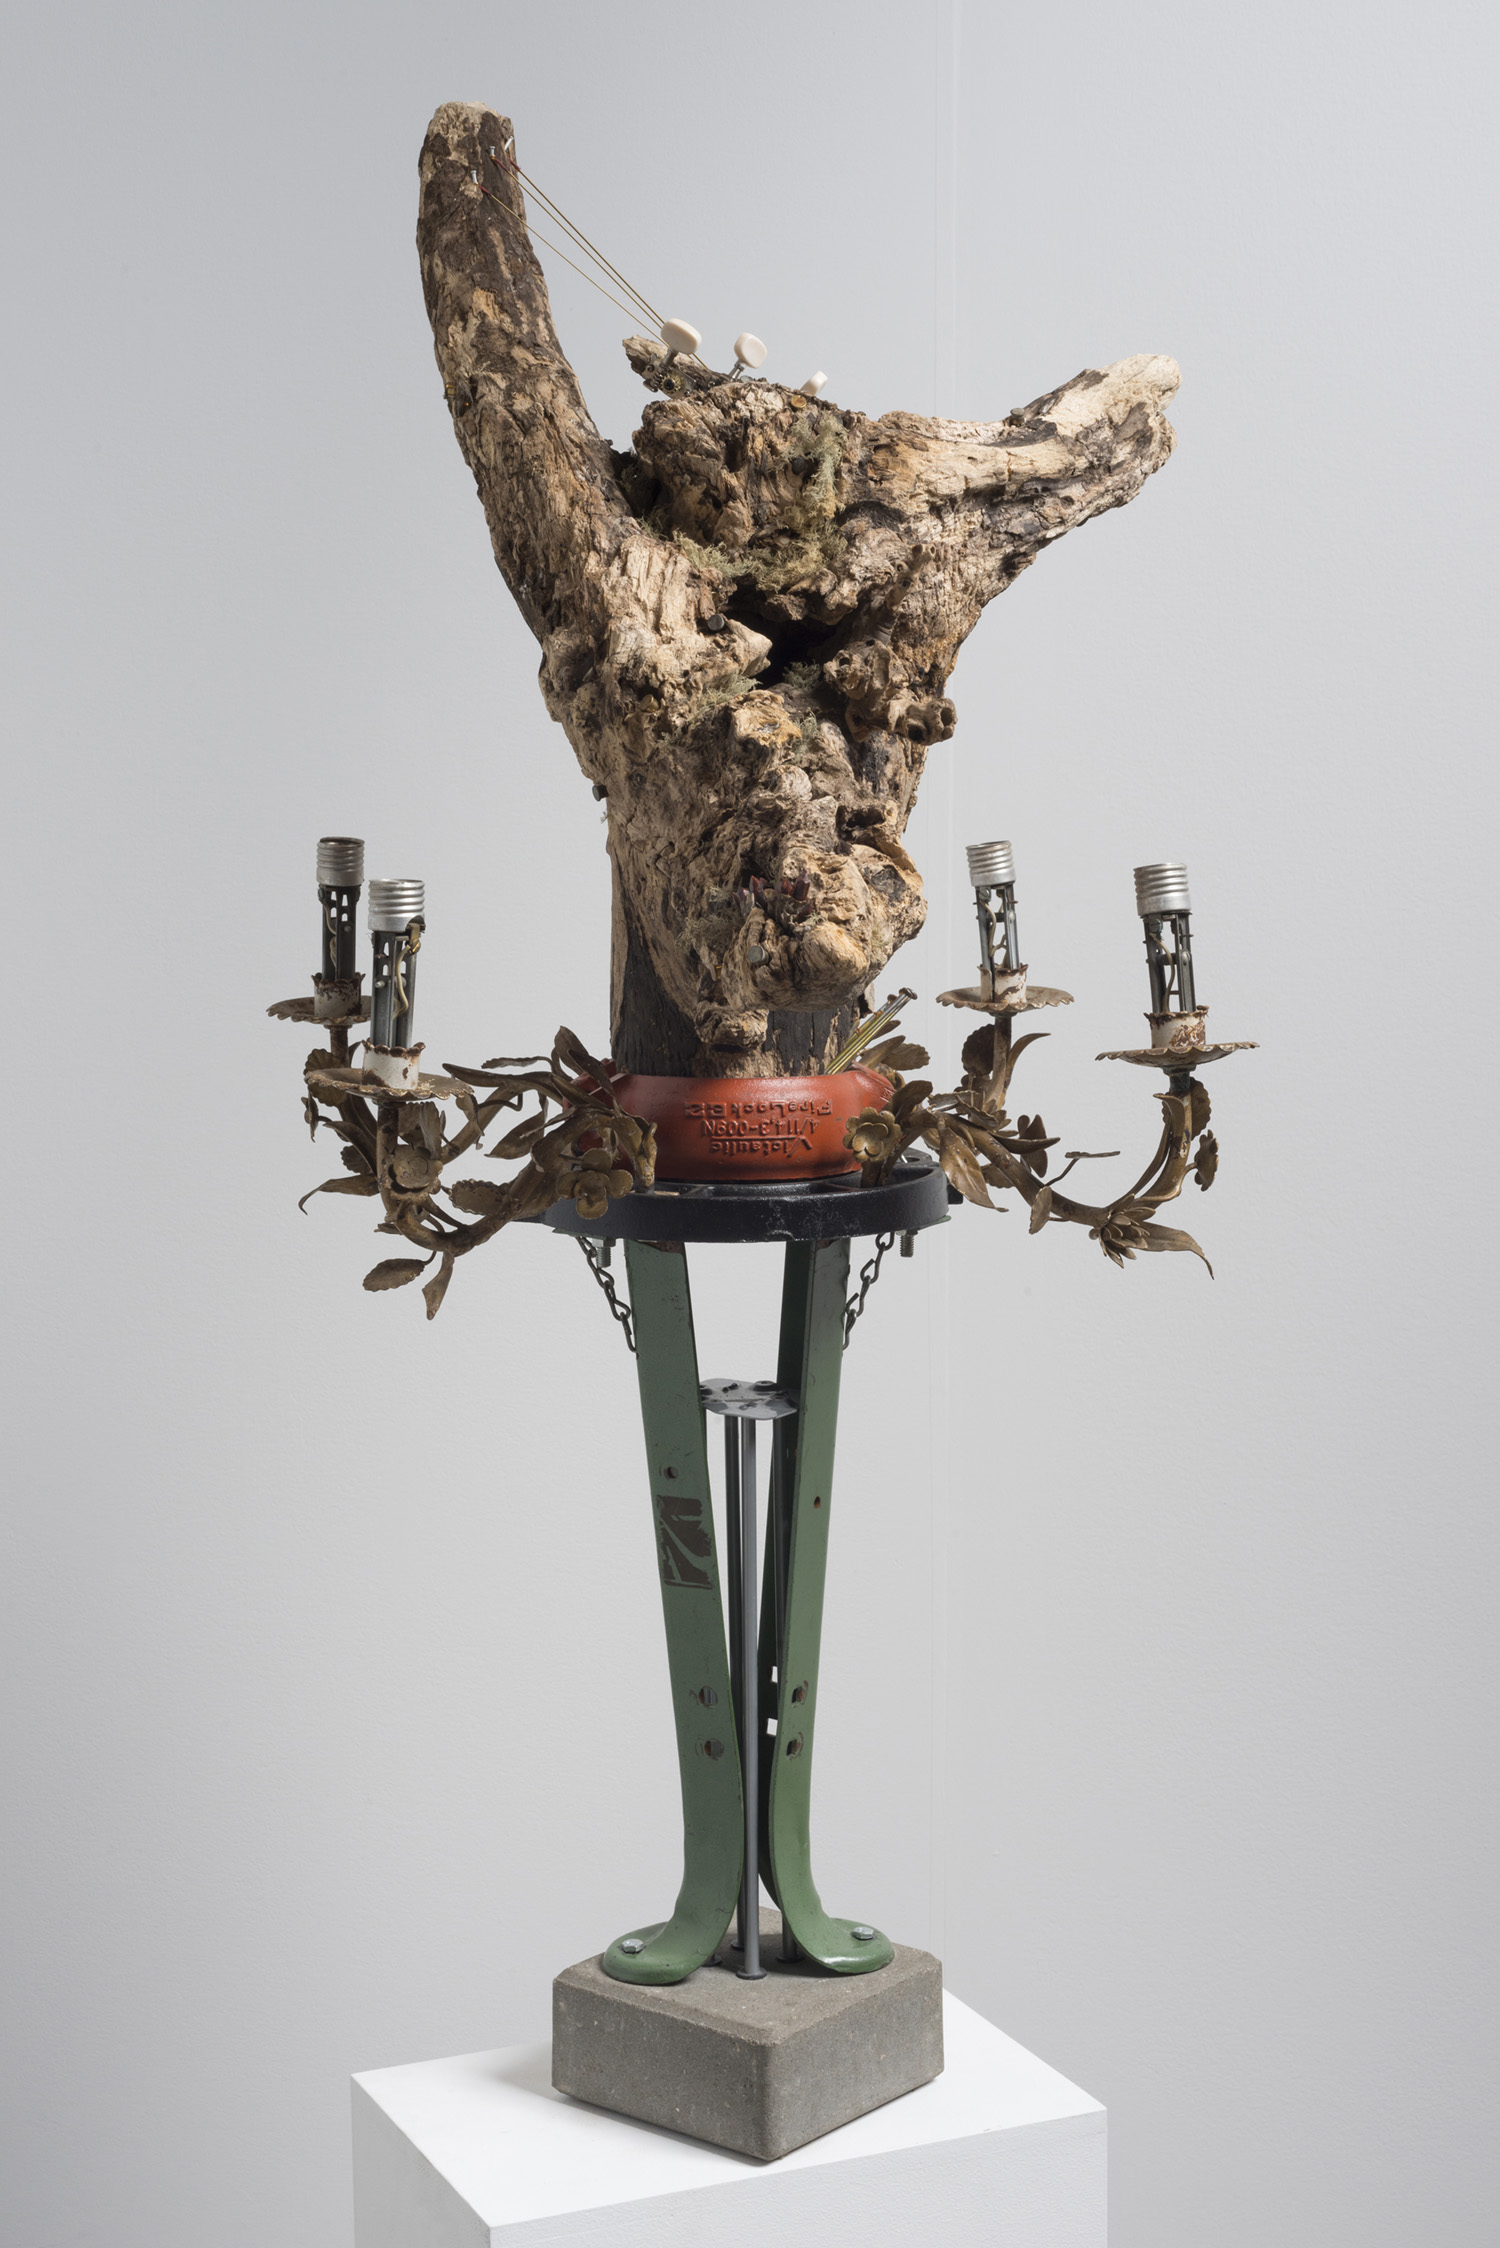 Lorna Williams-spoils-2013-chandelier fixtures, table legs, concrete, chain, plumbing hardware, Spanish moss, ukulele, root system, nails, wasp hive, acrylic, bullet casings-45x20x29-2(2).jpg